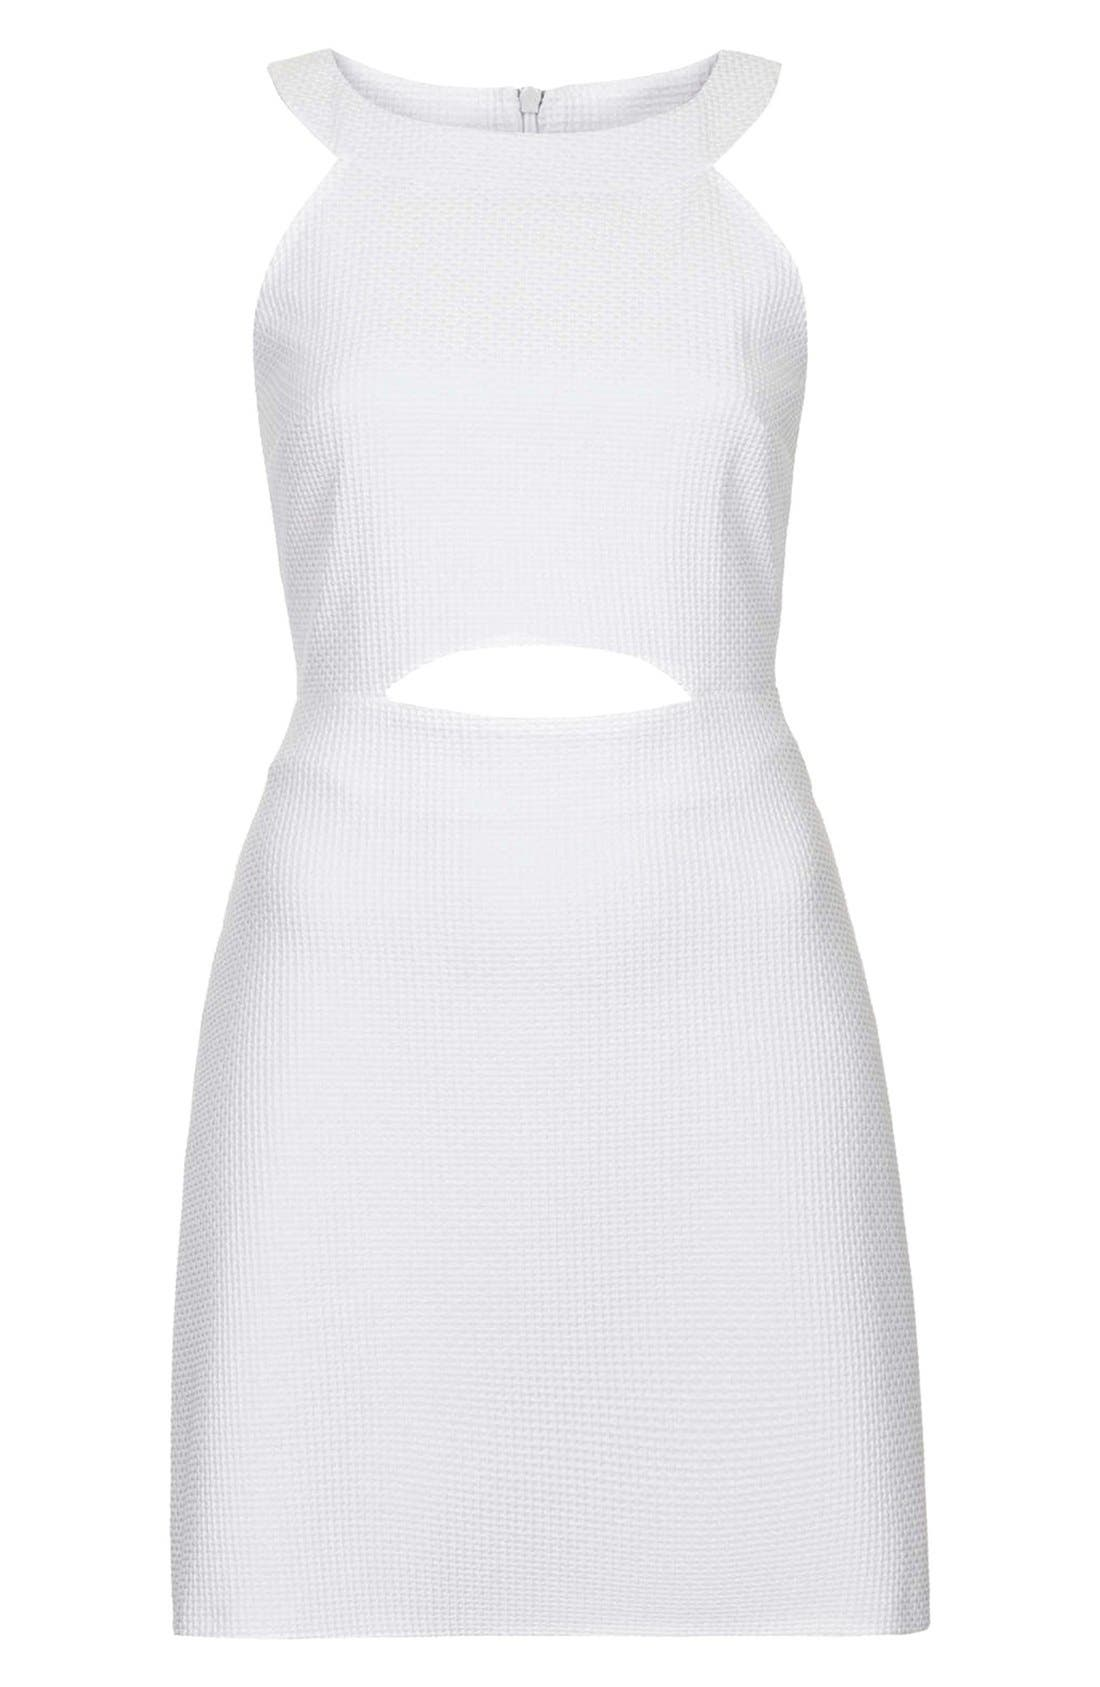 Alternate Image 3  - Topshop Cutout Textured Skater Dress